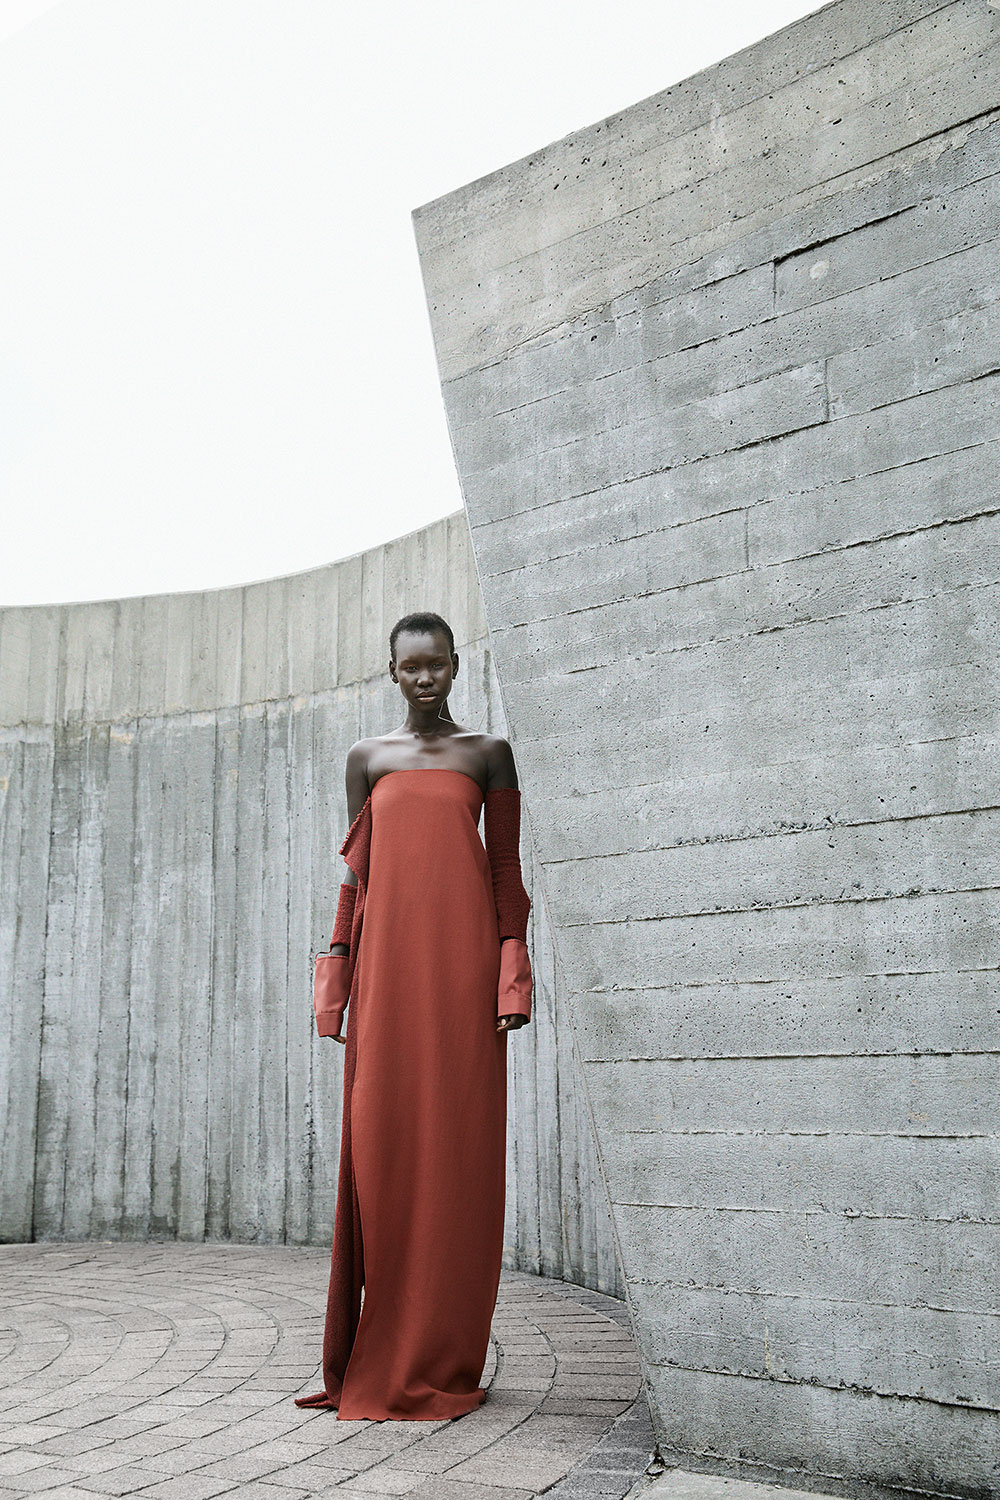 Colored photo by Lauren Loncar of model Adot in red dress for MONROWE magazine